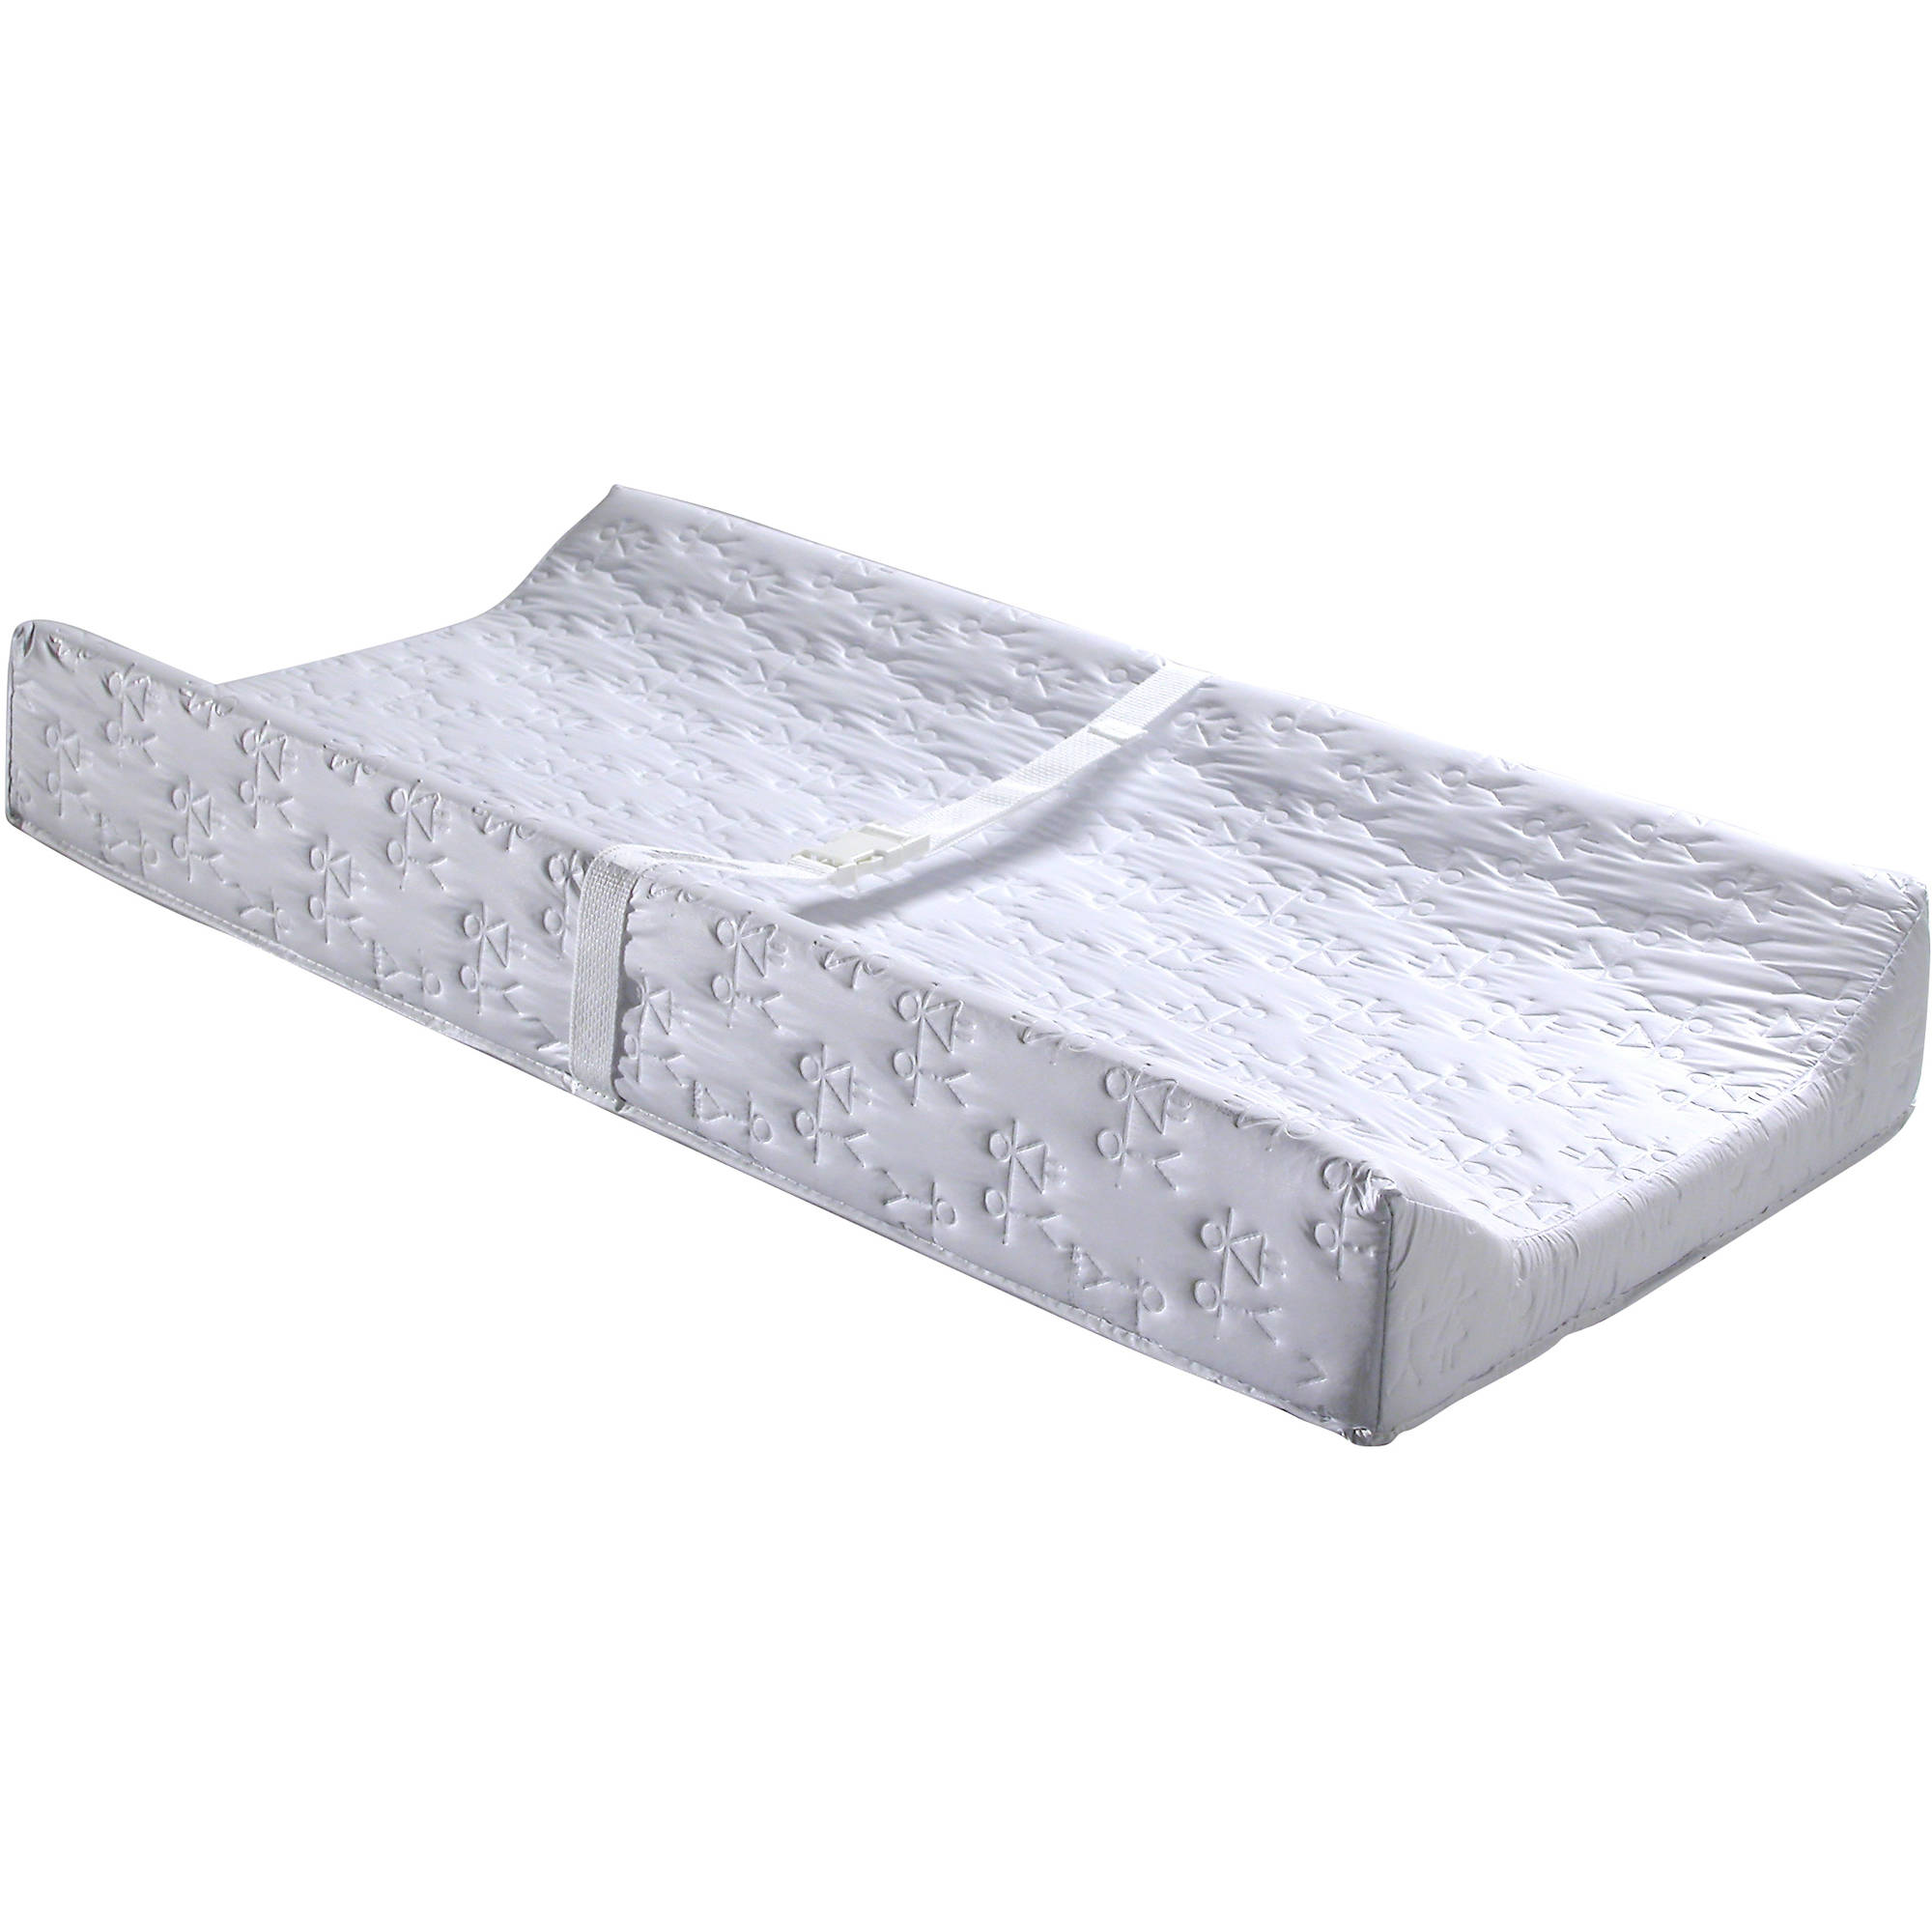 Child Craft Contour Changing Pad, White by Childcraft